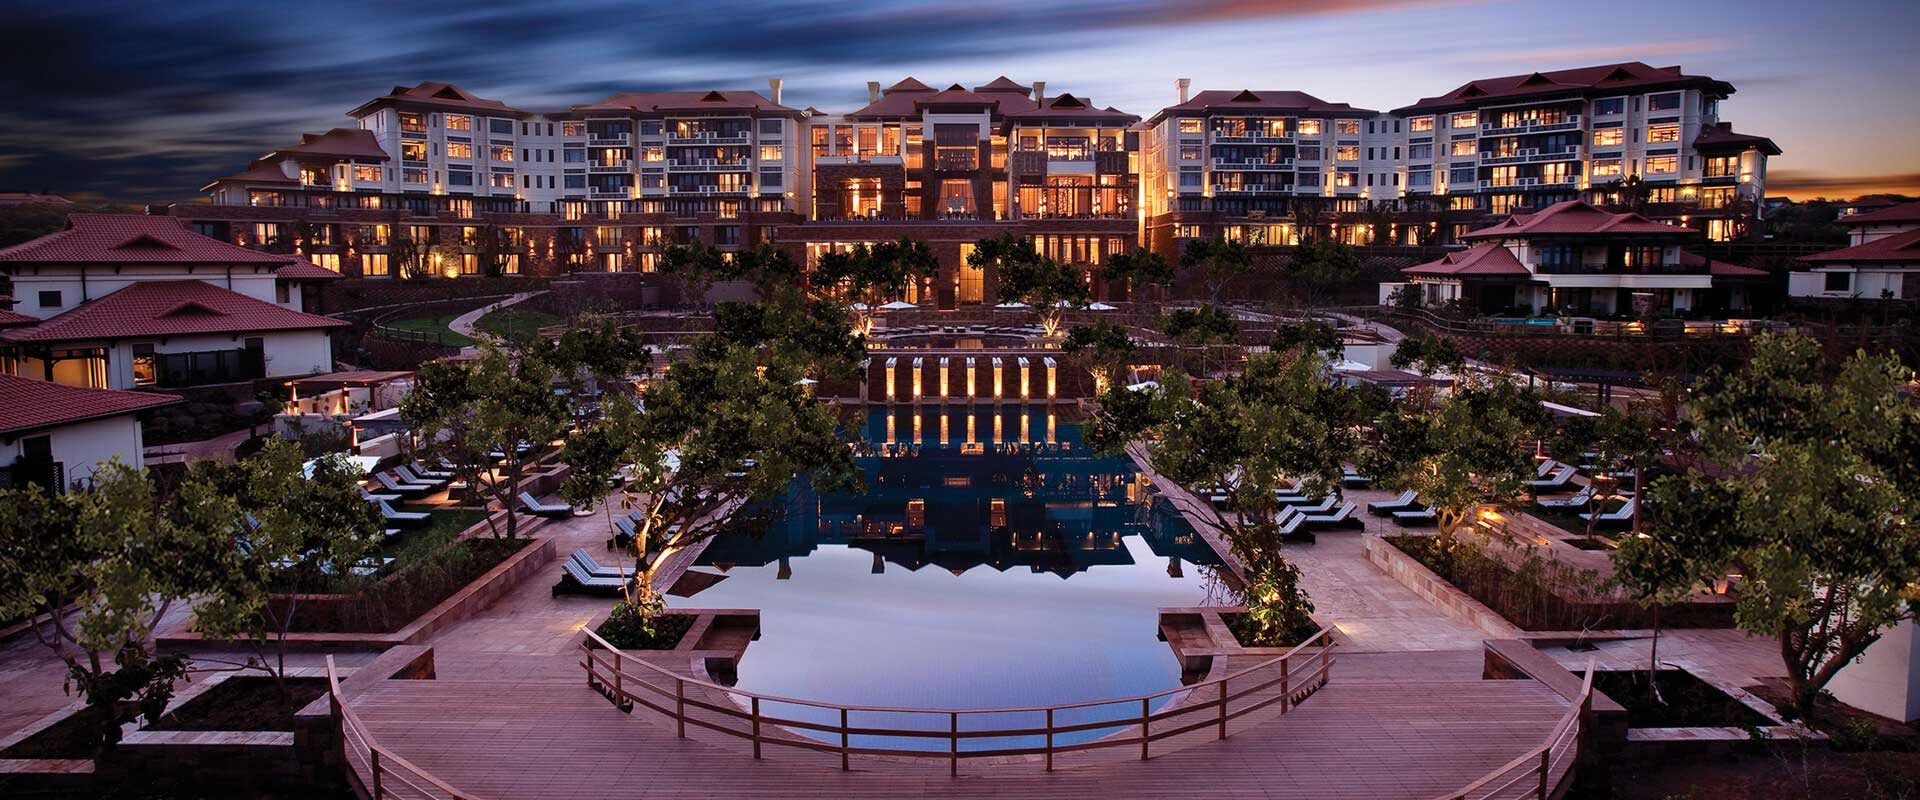 Fairmont Zimbali Resort, South Africa